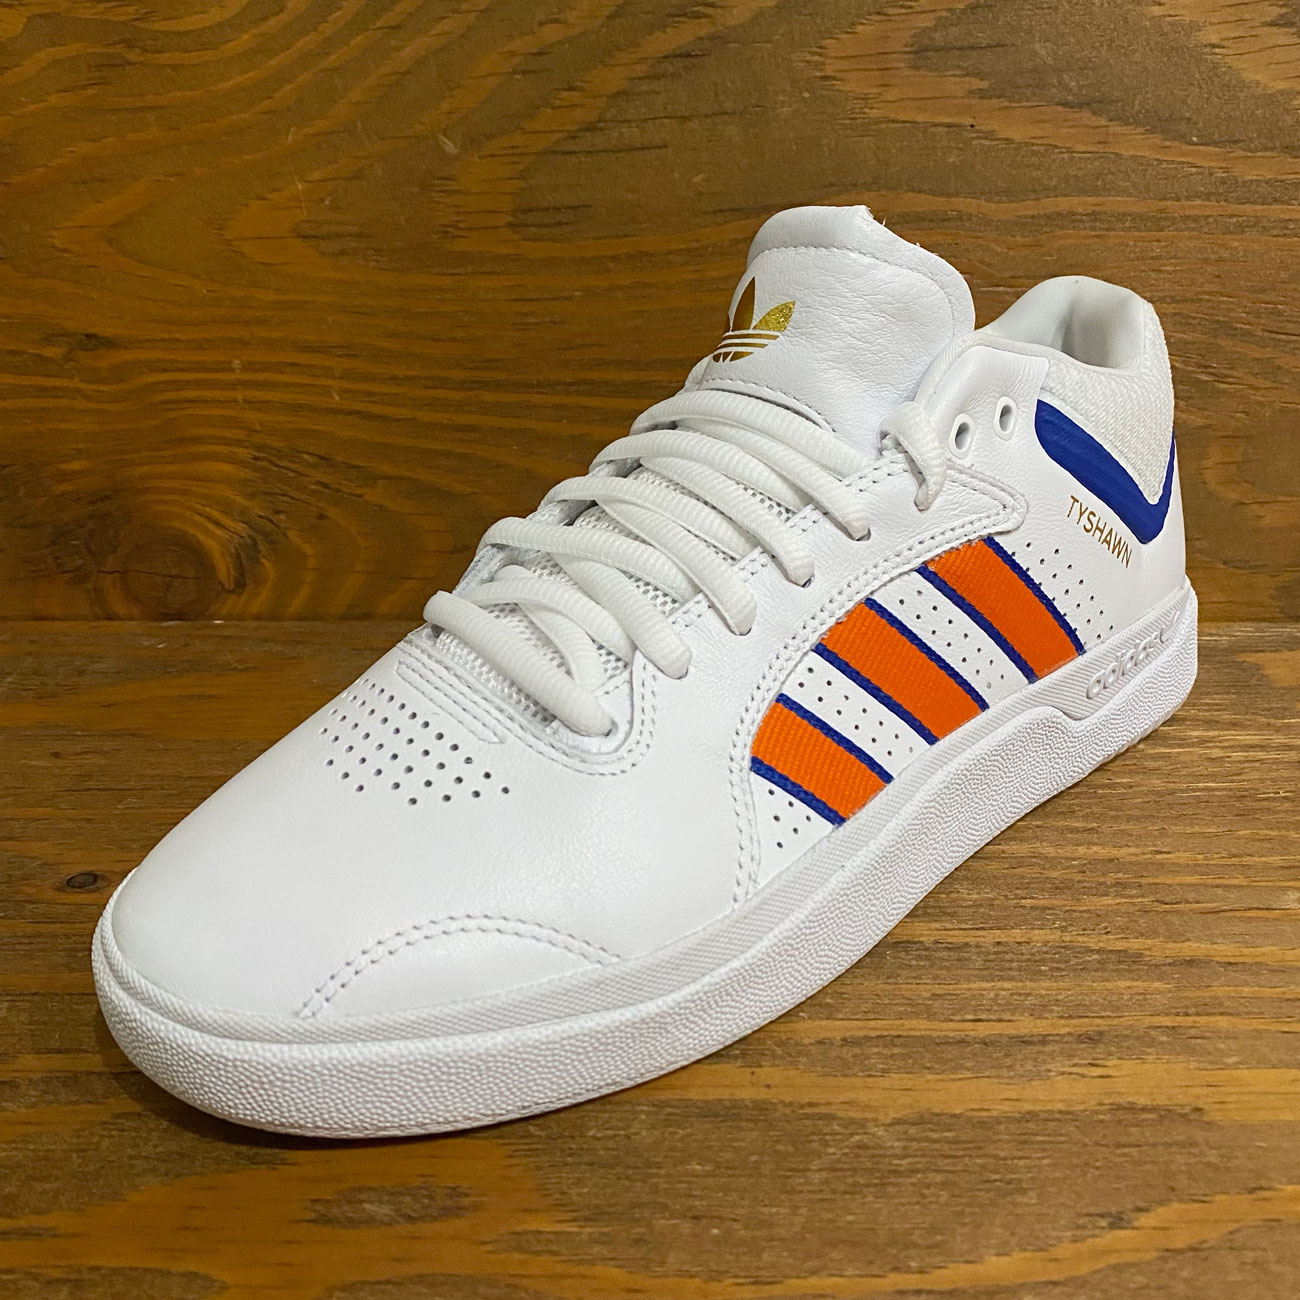 ADIDAS TYSHAWN WHITE/ORANGE